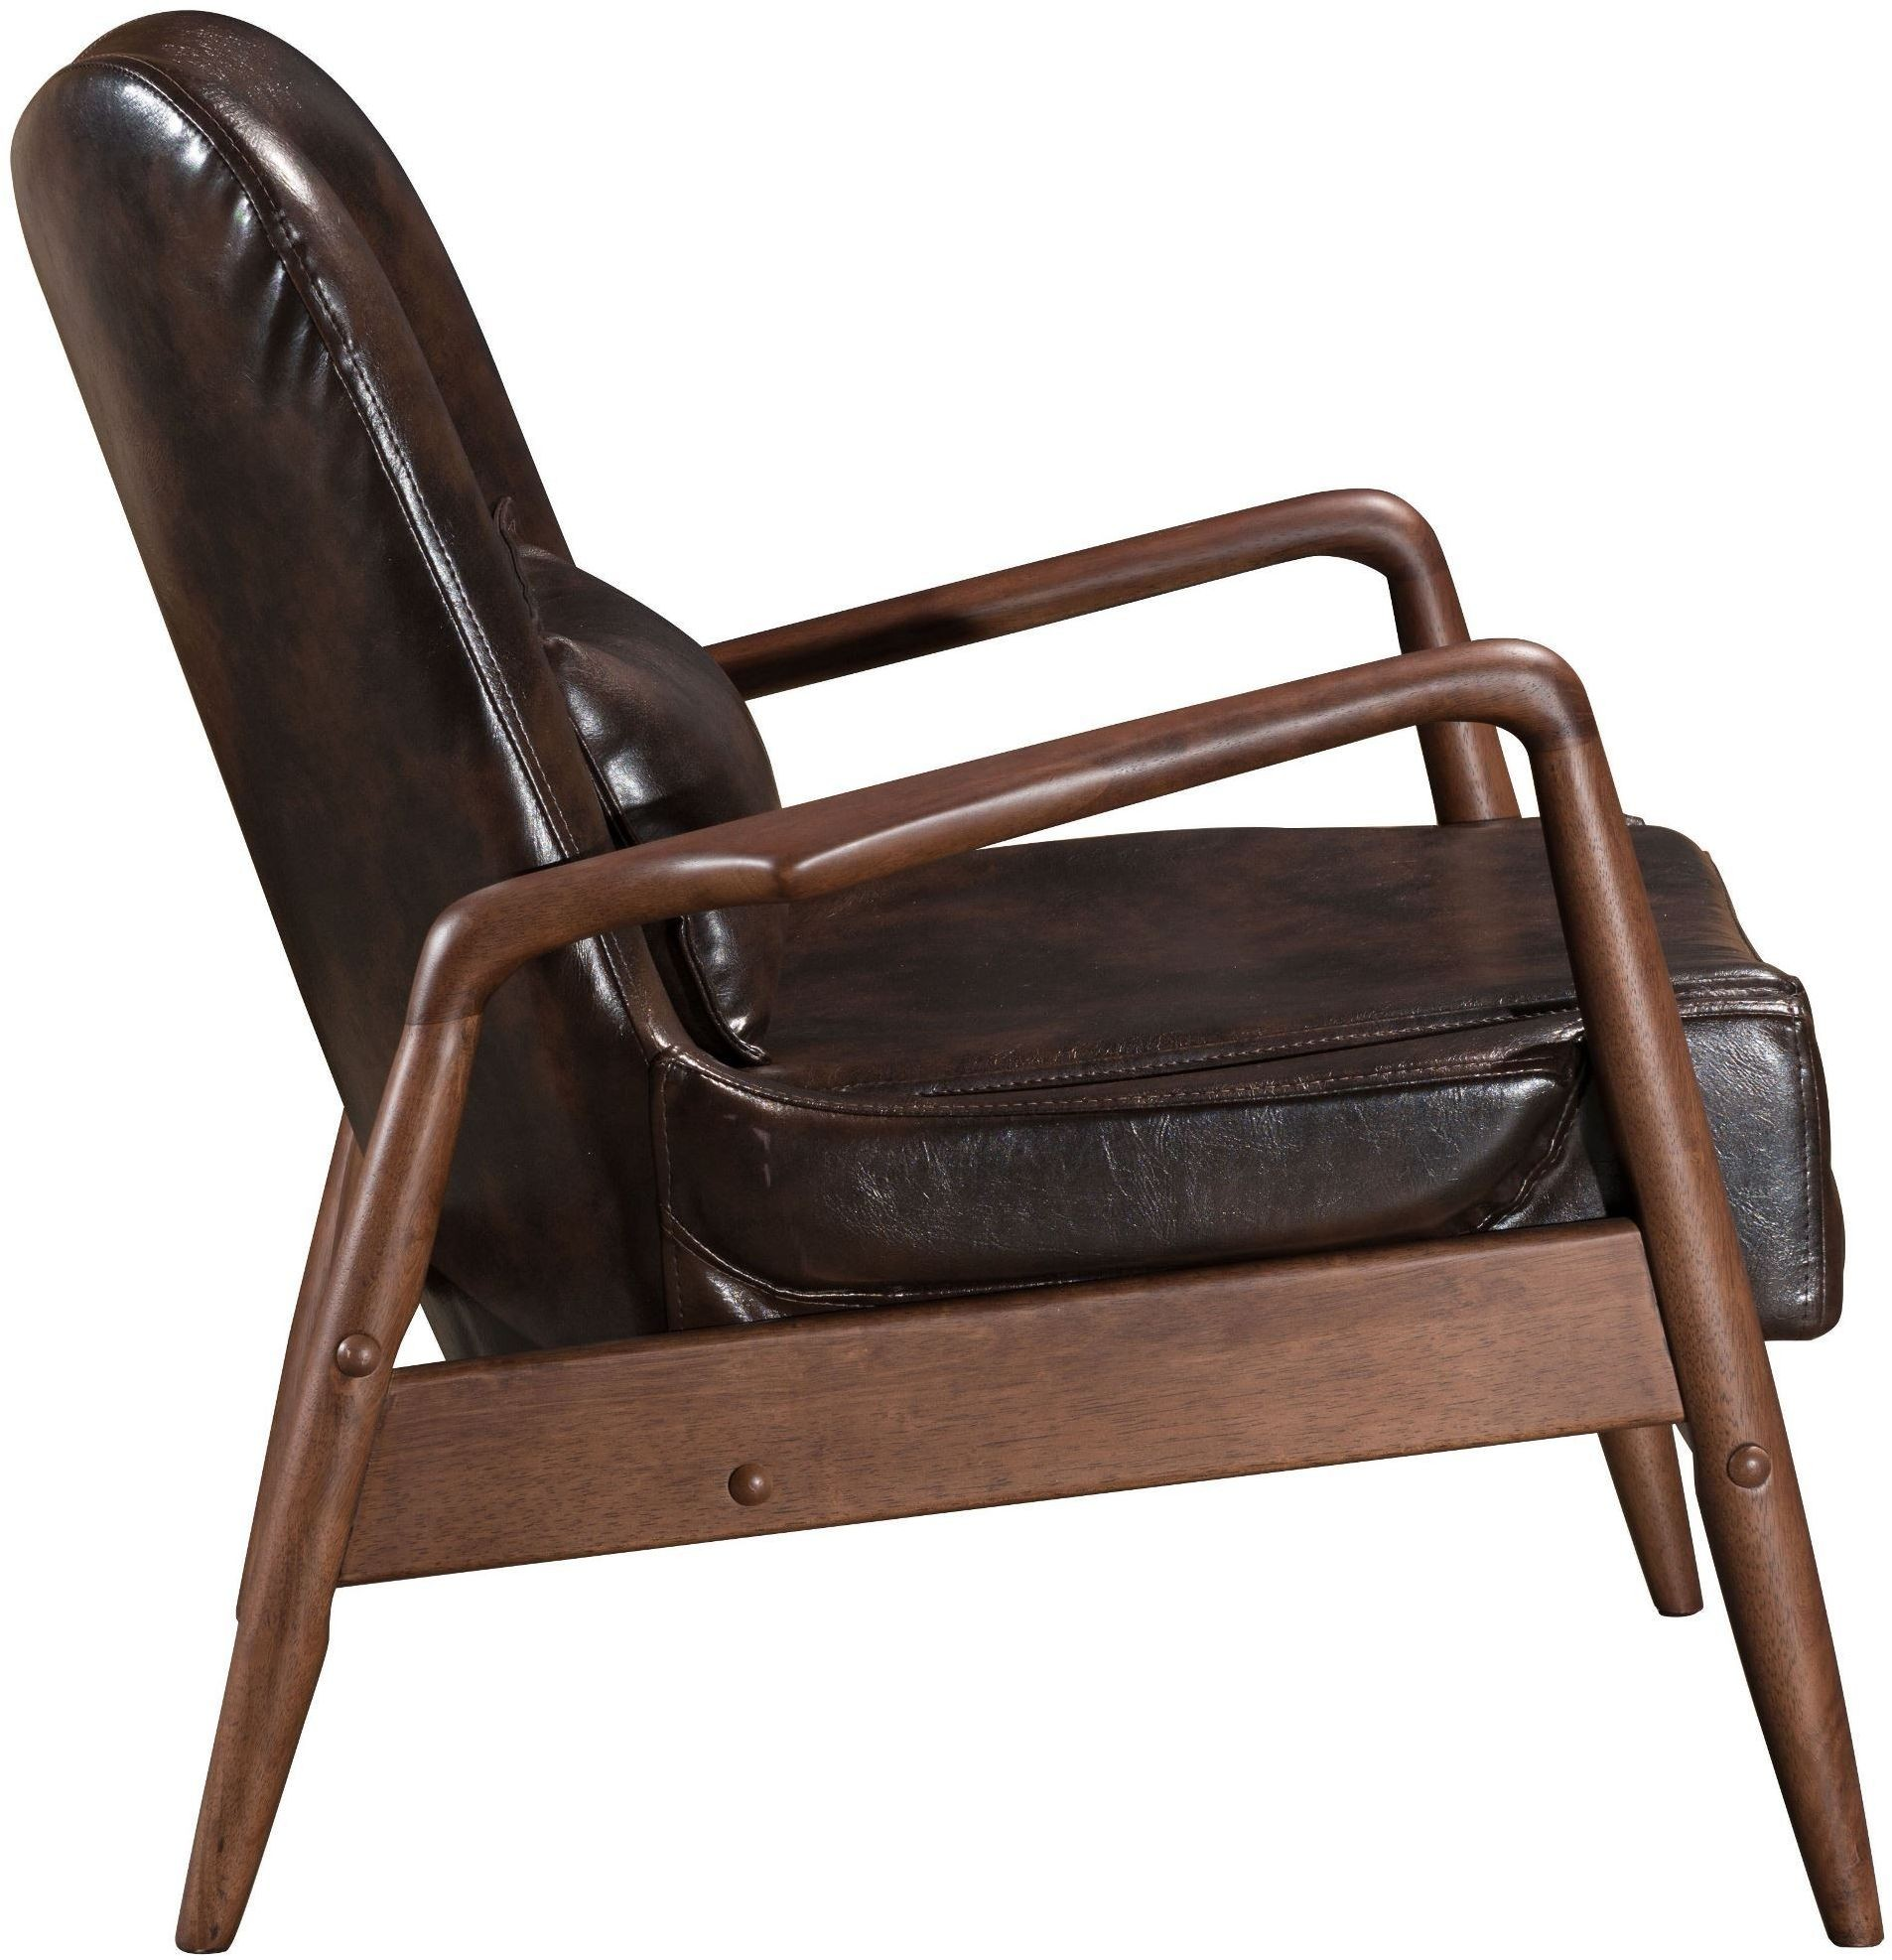 bully lounge chair ottoman brown